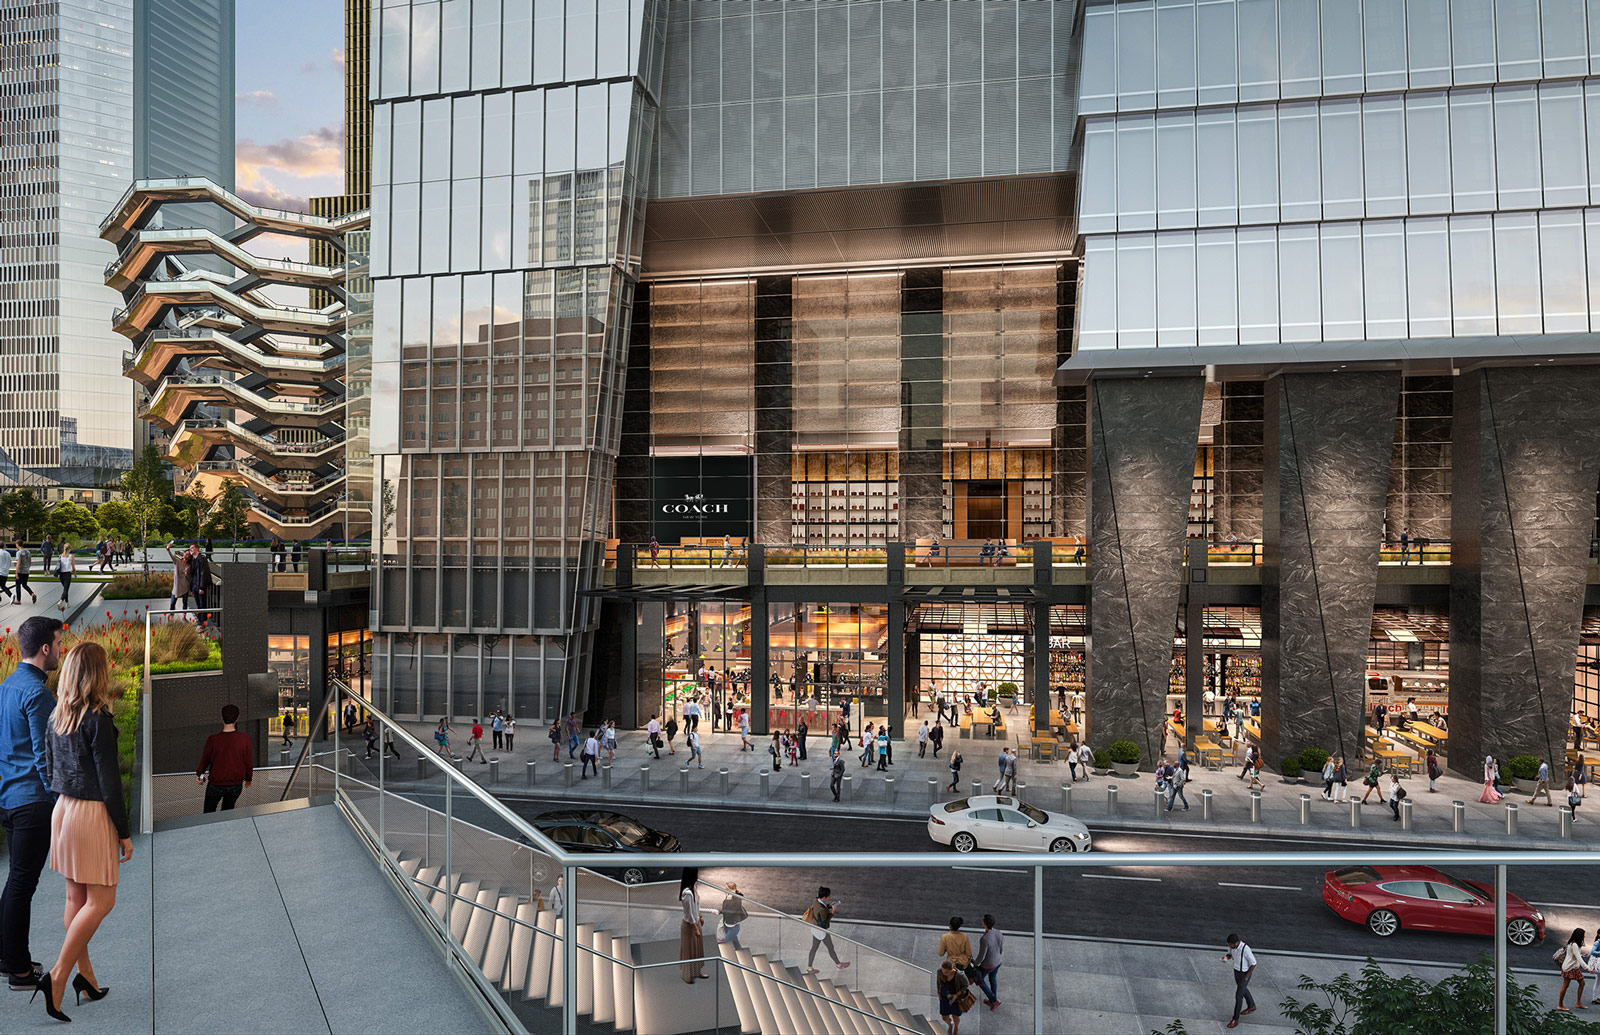 RelatedOxford releases new renderings of Hudson Yards